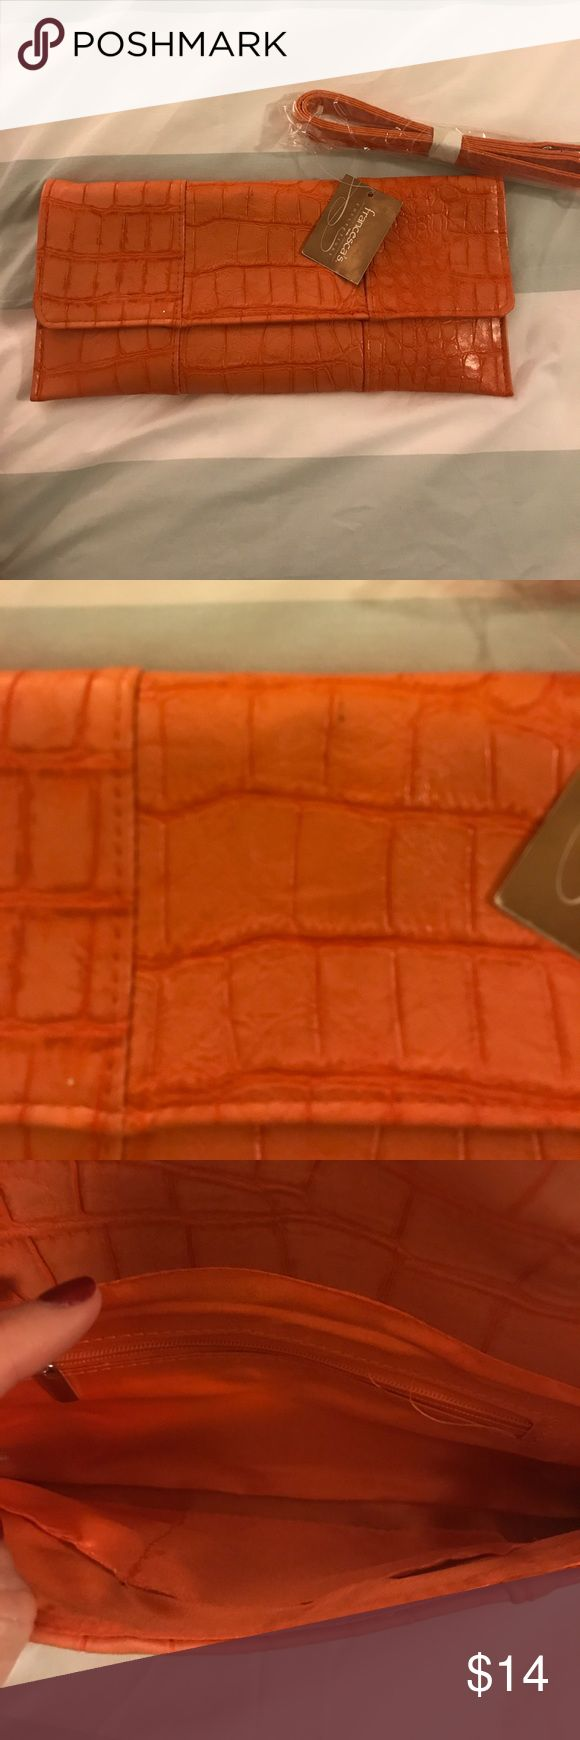 NWT Orange Clutch A must have! Never used! Brand new with tags! Francesca's Collections Bags Clutches & Wristlets